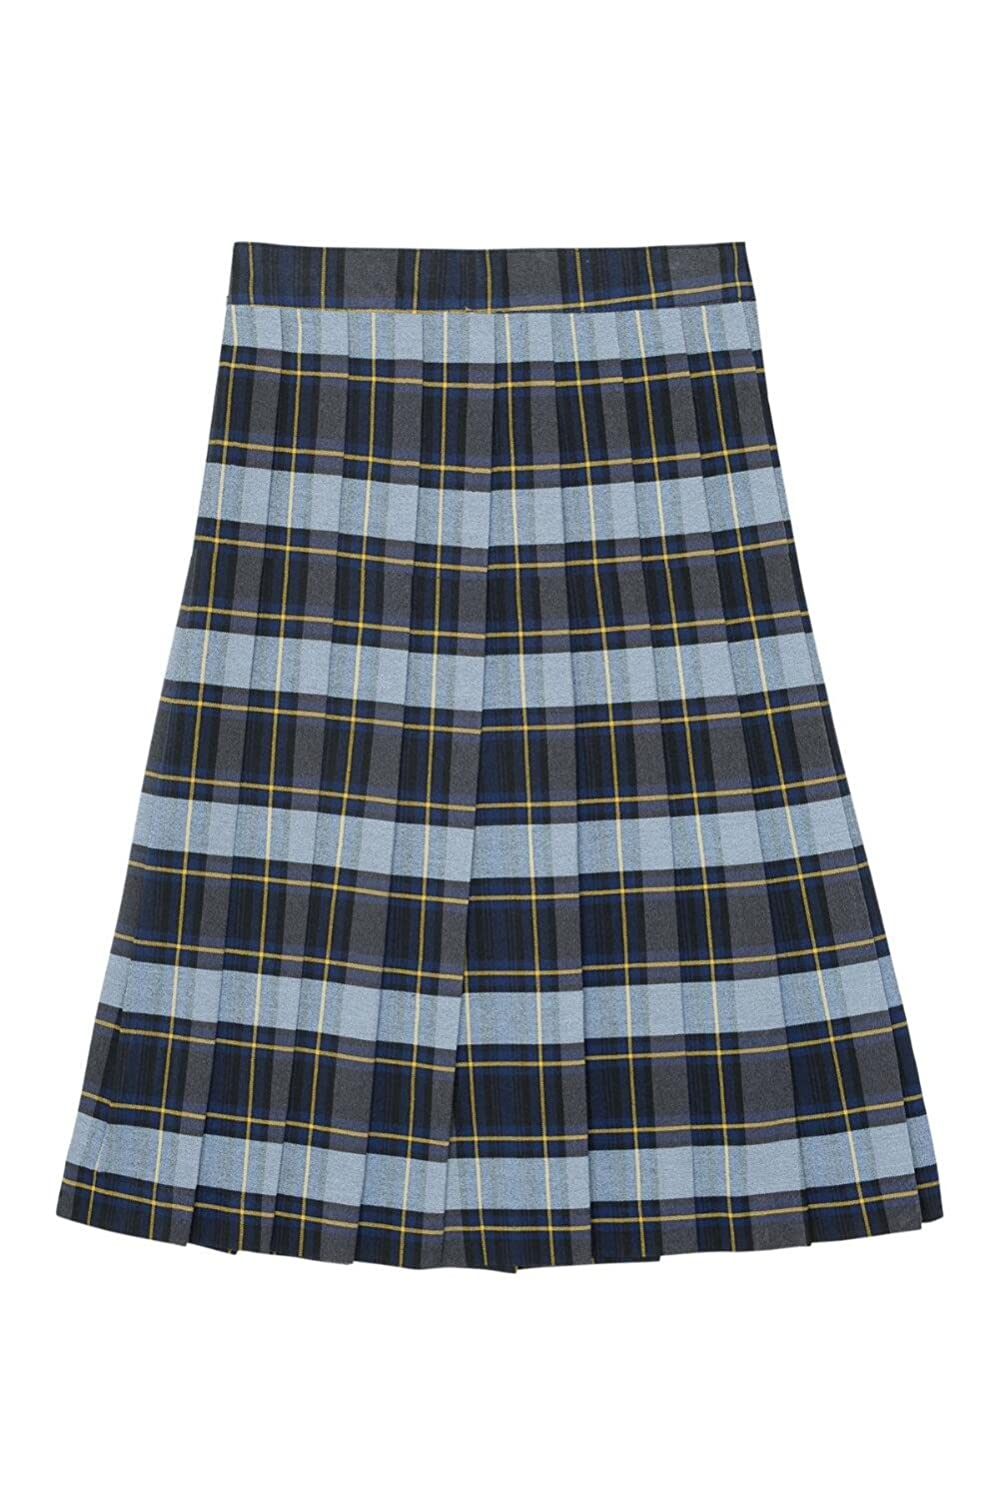 French Toast Below The Knee Plaid Pleated Skirtt(Junior Sizes) French Toast School Uniforms 1575X BLGP 9J